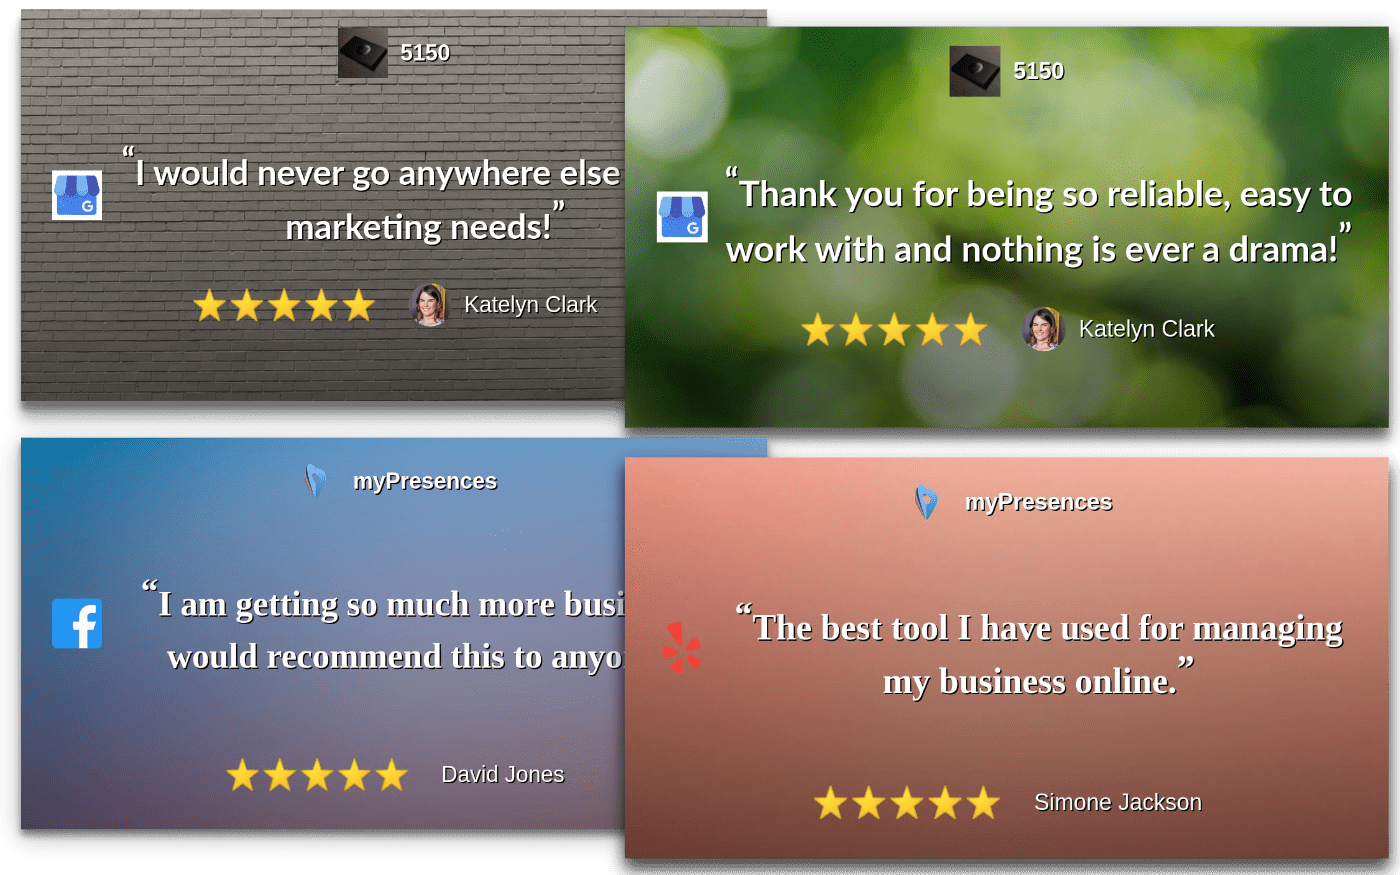 review_image_collage.png